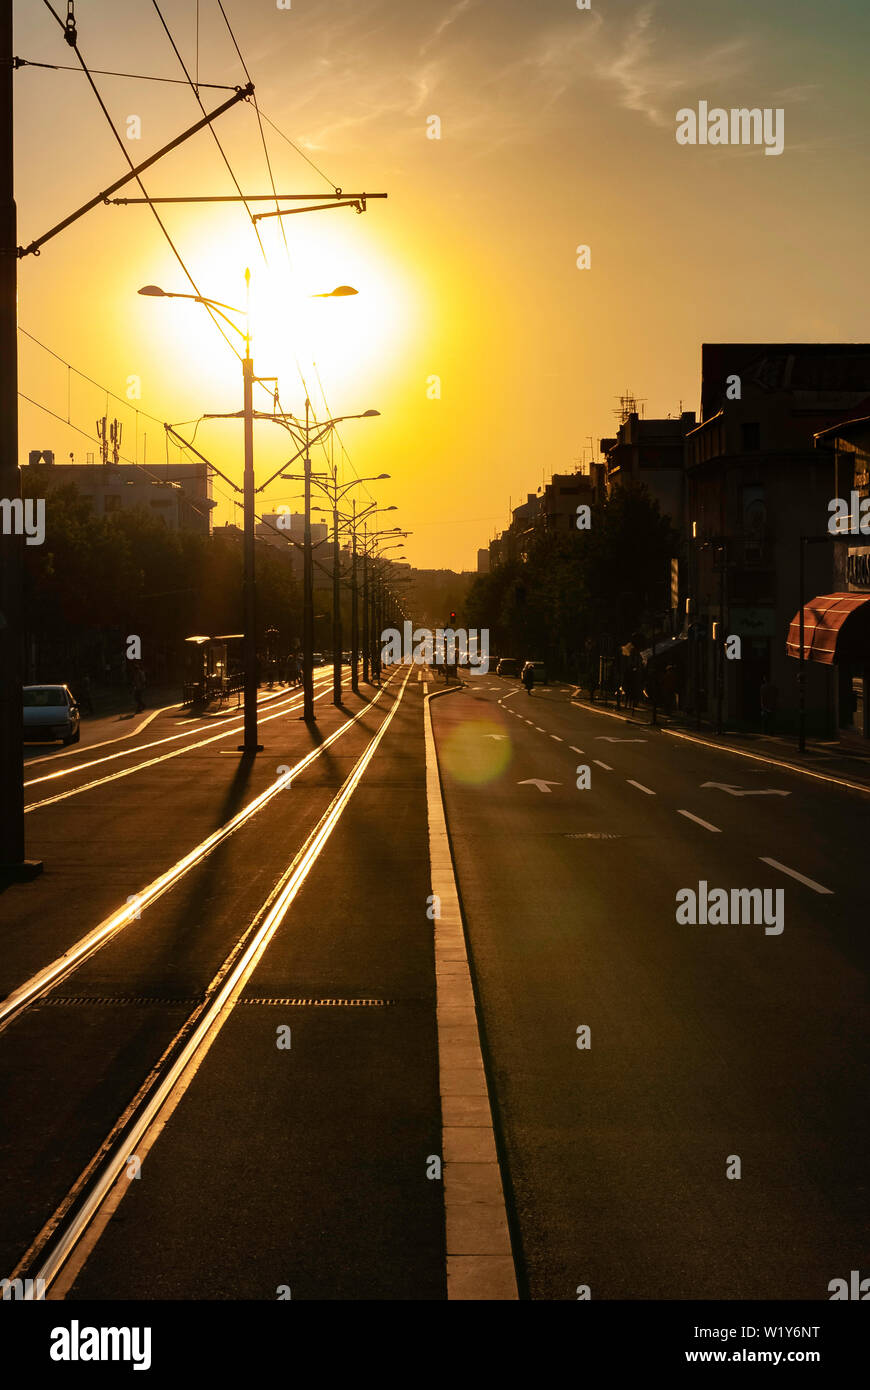 Urban city sunset vertical image of city street boulevard direct sunlight lens flare tram track tramway rails empty street trolleycar path Stock Photo